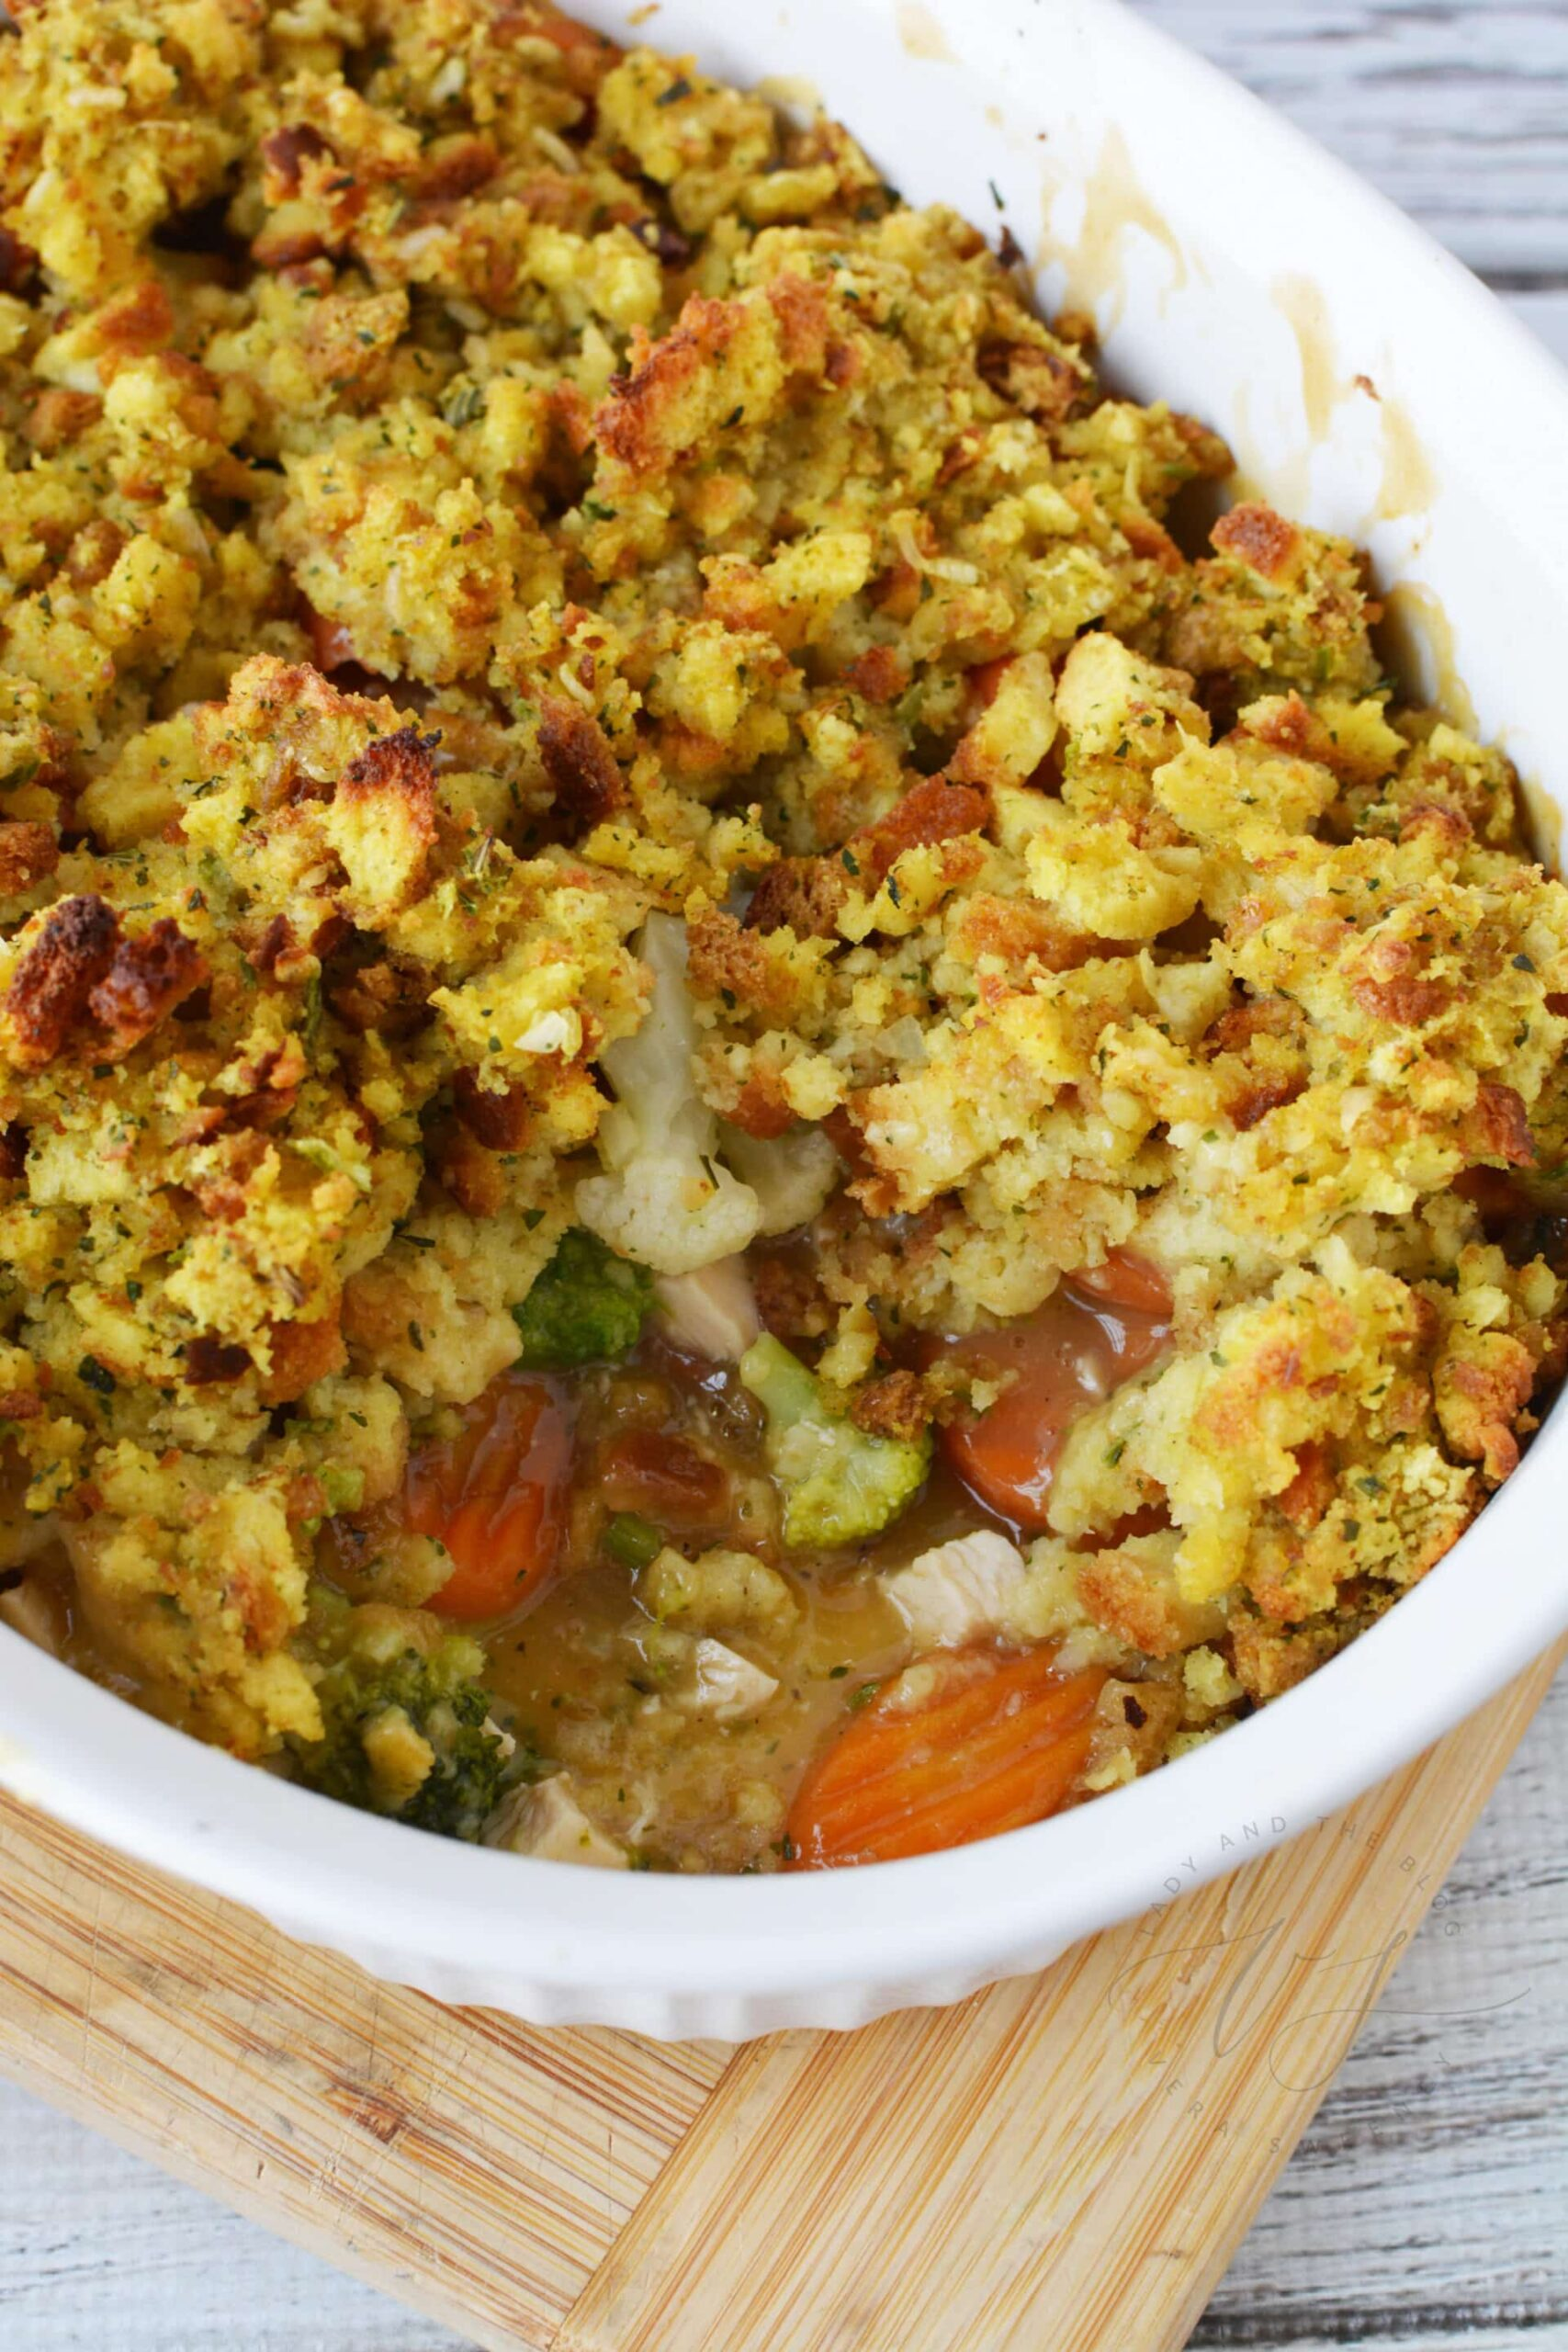 Turkey Casserole Recipe - Easy To Make Turkey And Stuffing Casserole